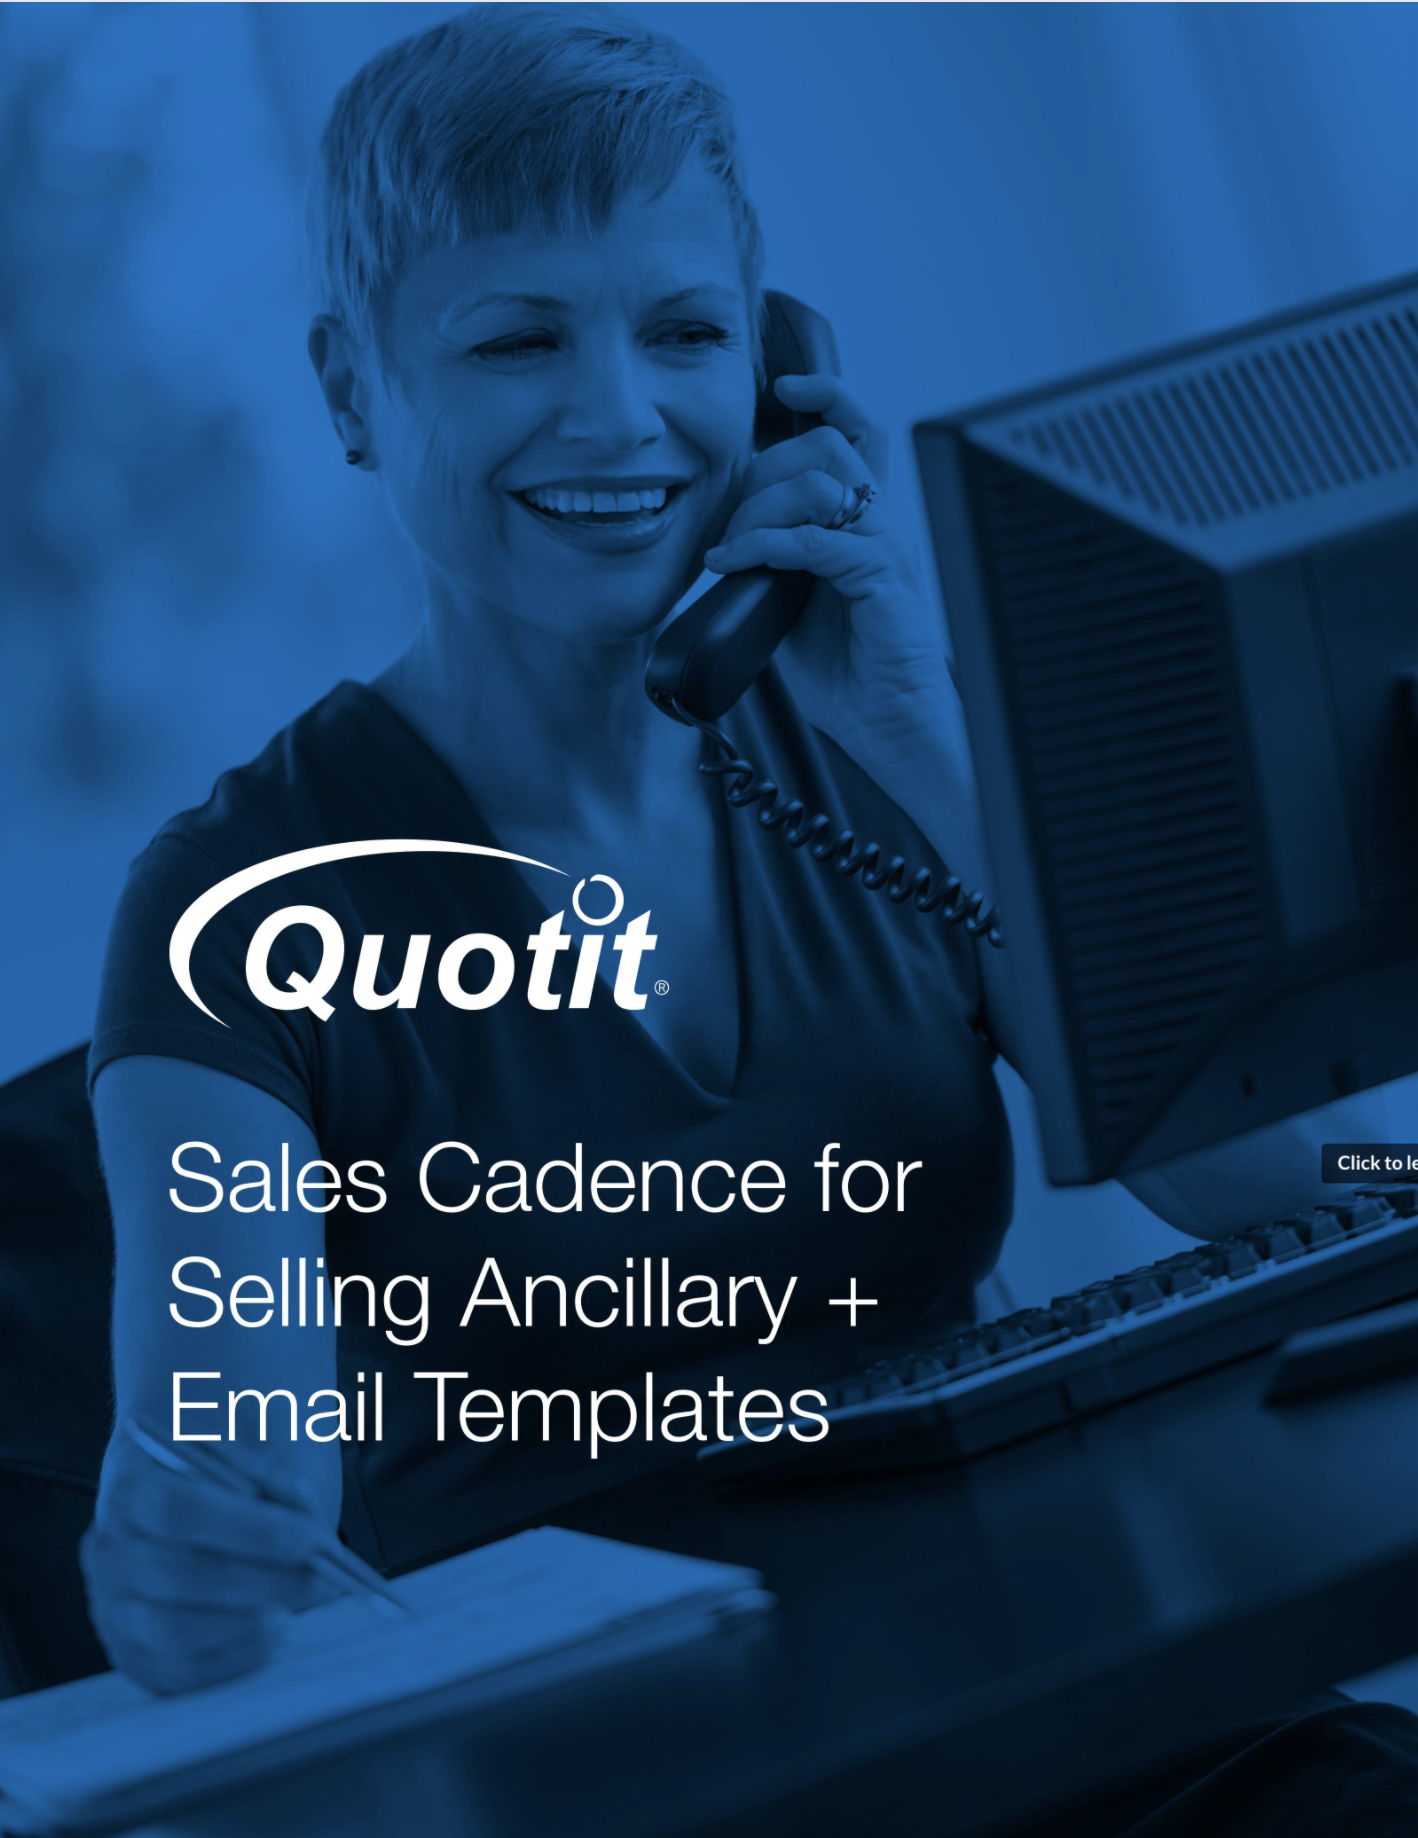 Sales_Cadence_Selling_Ancillary